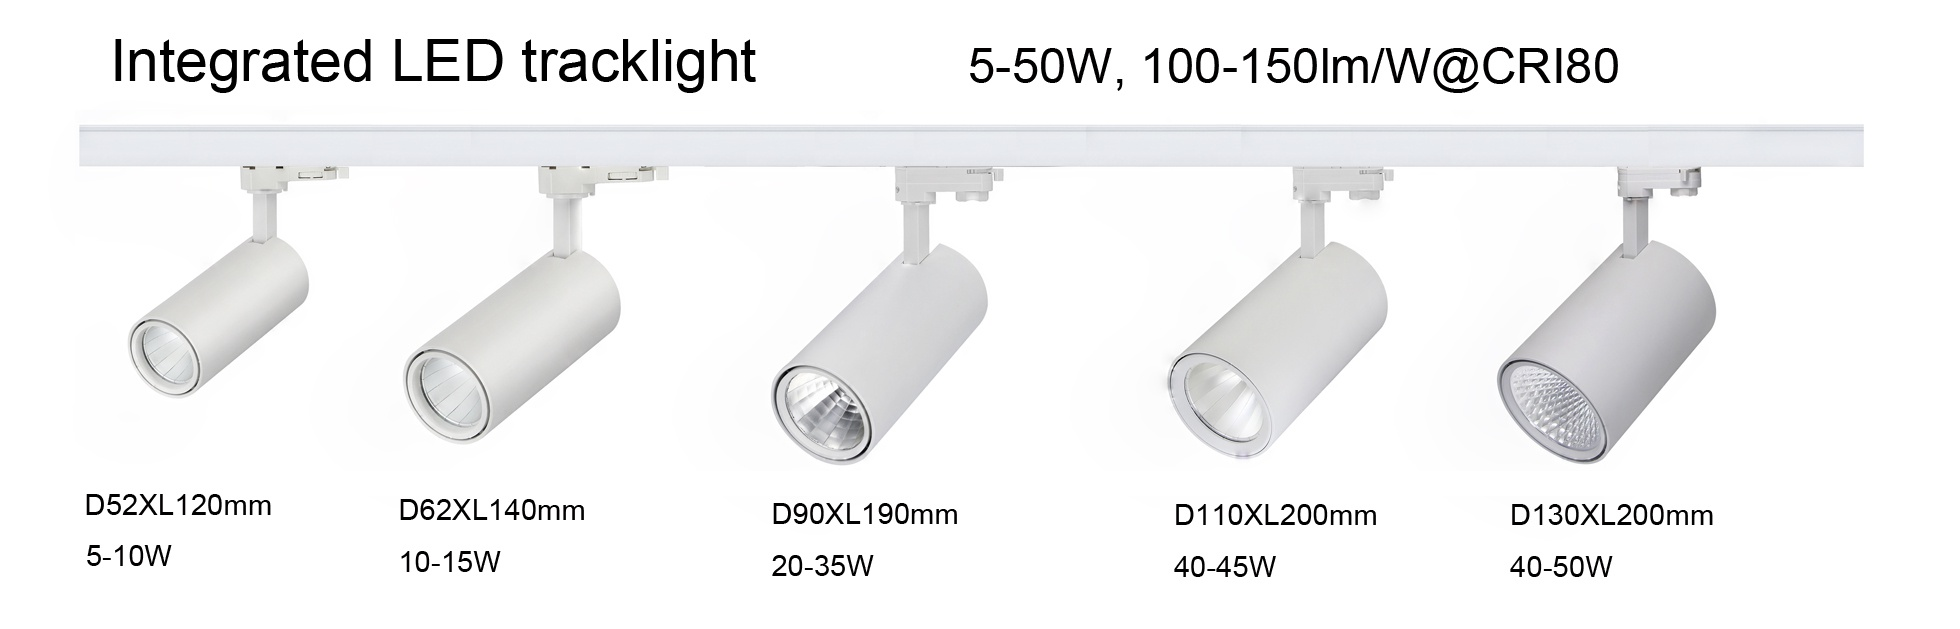 integrated LED tracklight 5-50W, 1/3 phase track adapter, 100-150lm/W@CRI80